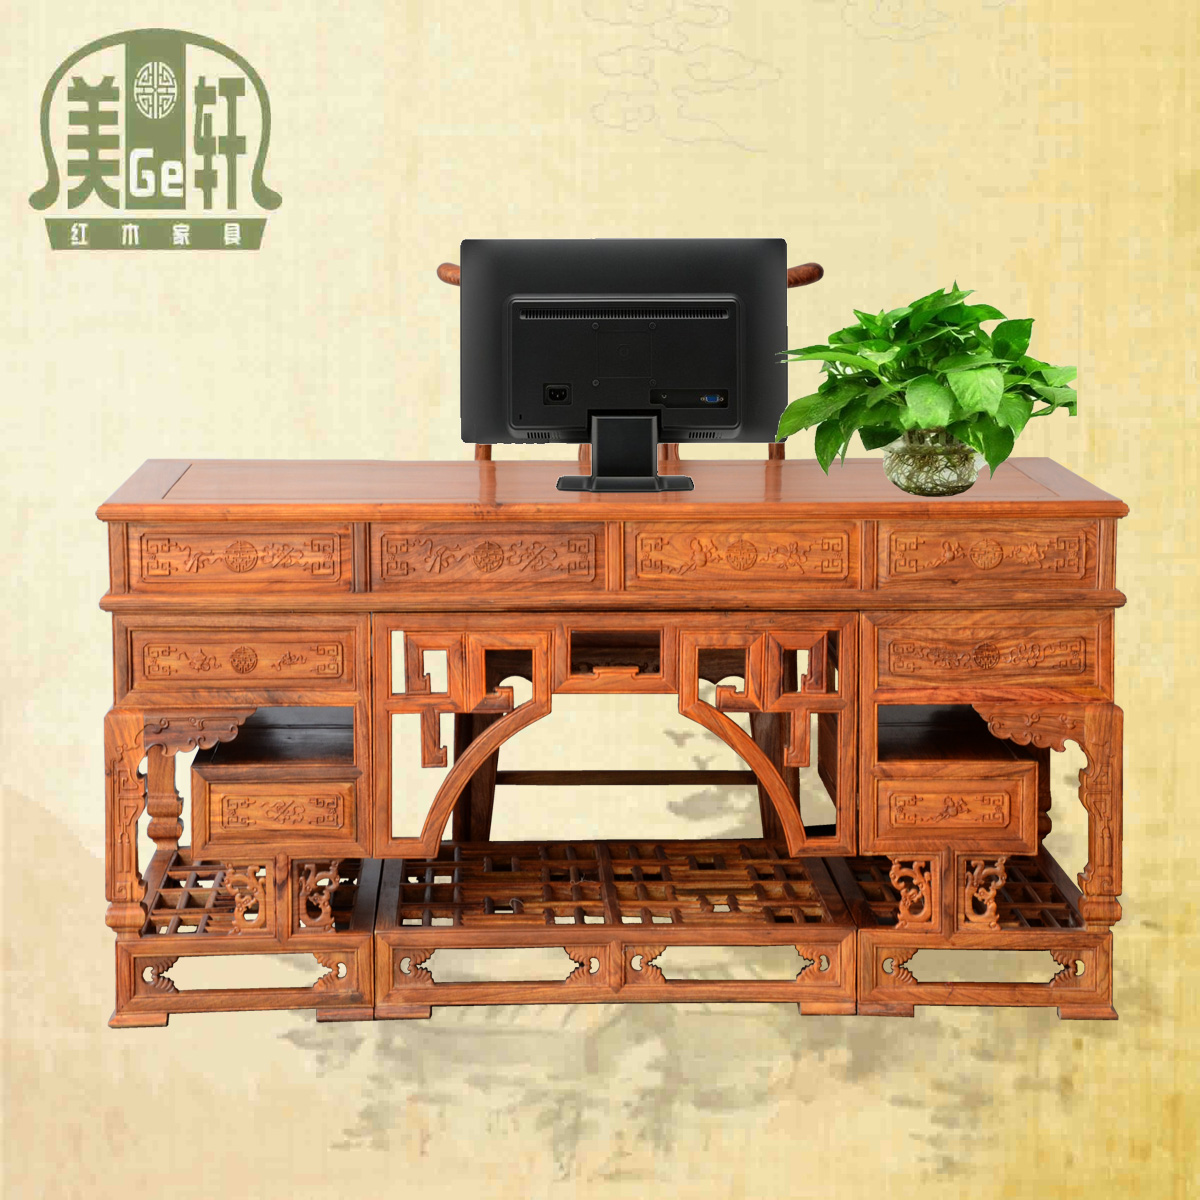 Us court xuan mahogany african pear wood computer desk desk desk boss desk desk desk desk